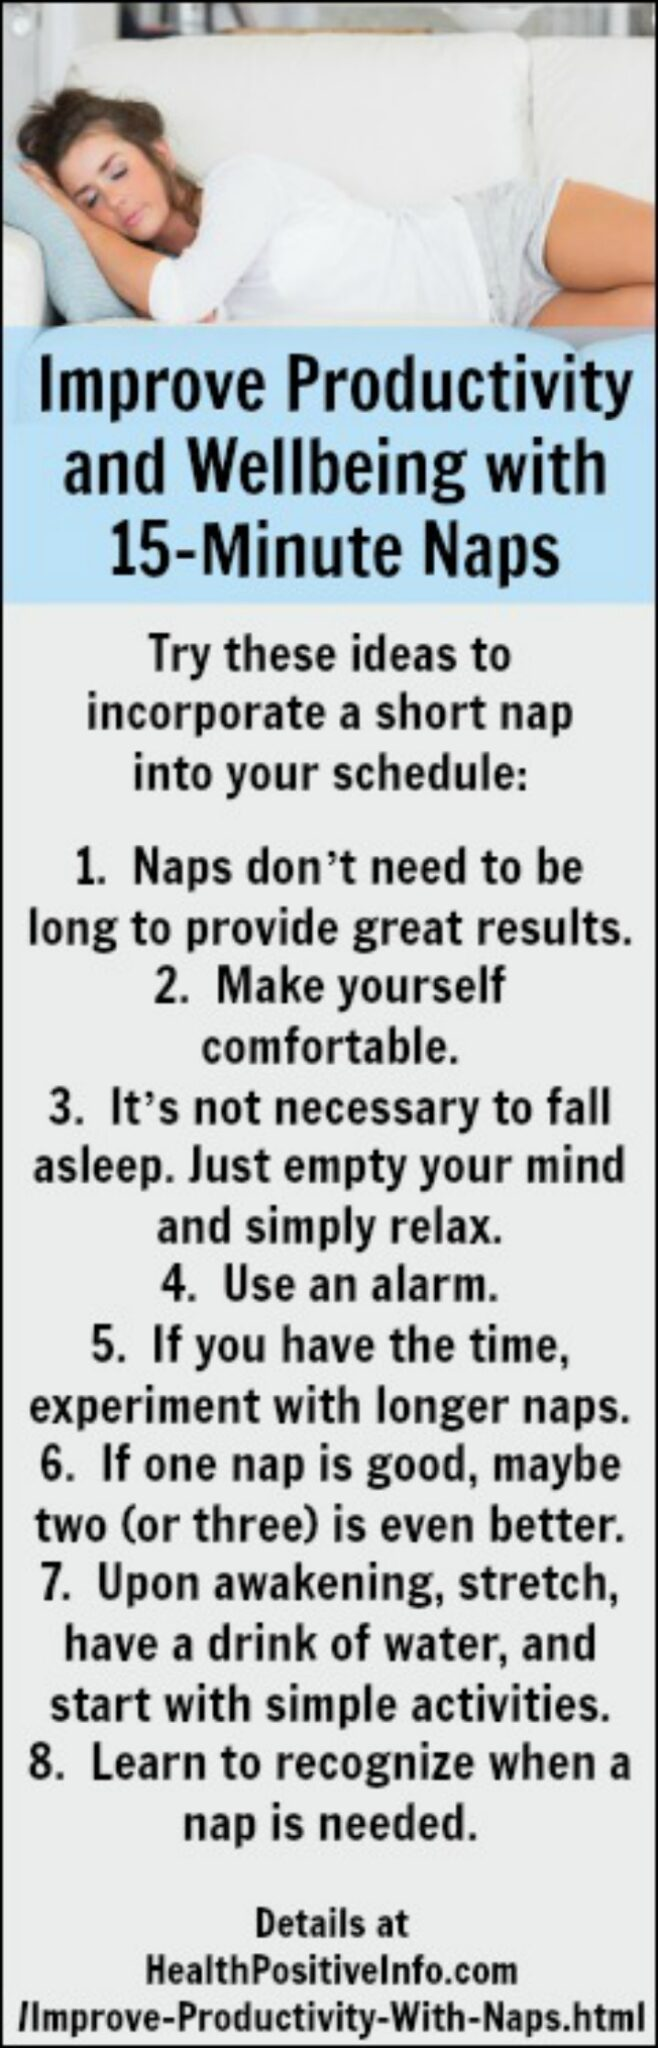 Improve Productivity and Well-being with Power Naps - https://healthpositiveinfo.com/improve-productivity-with-naps.html